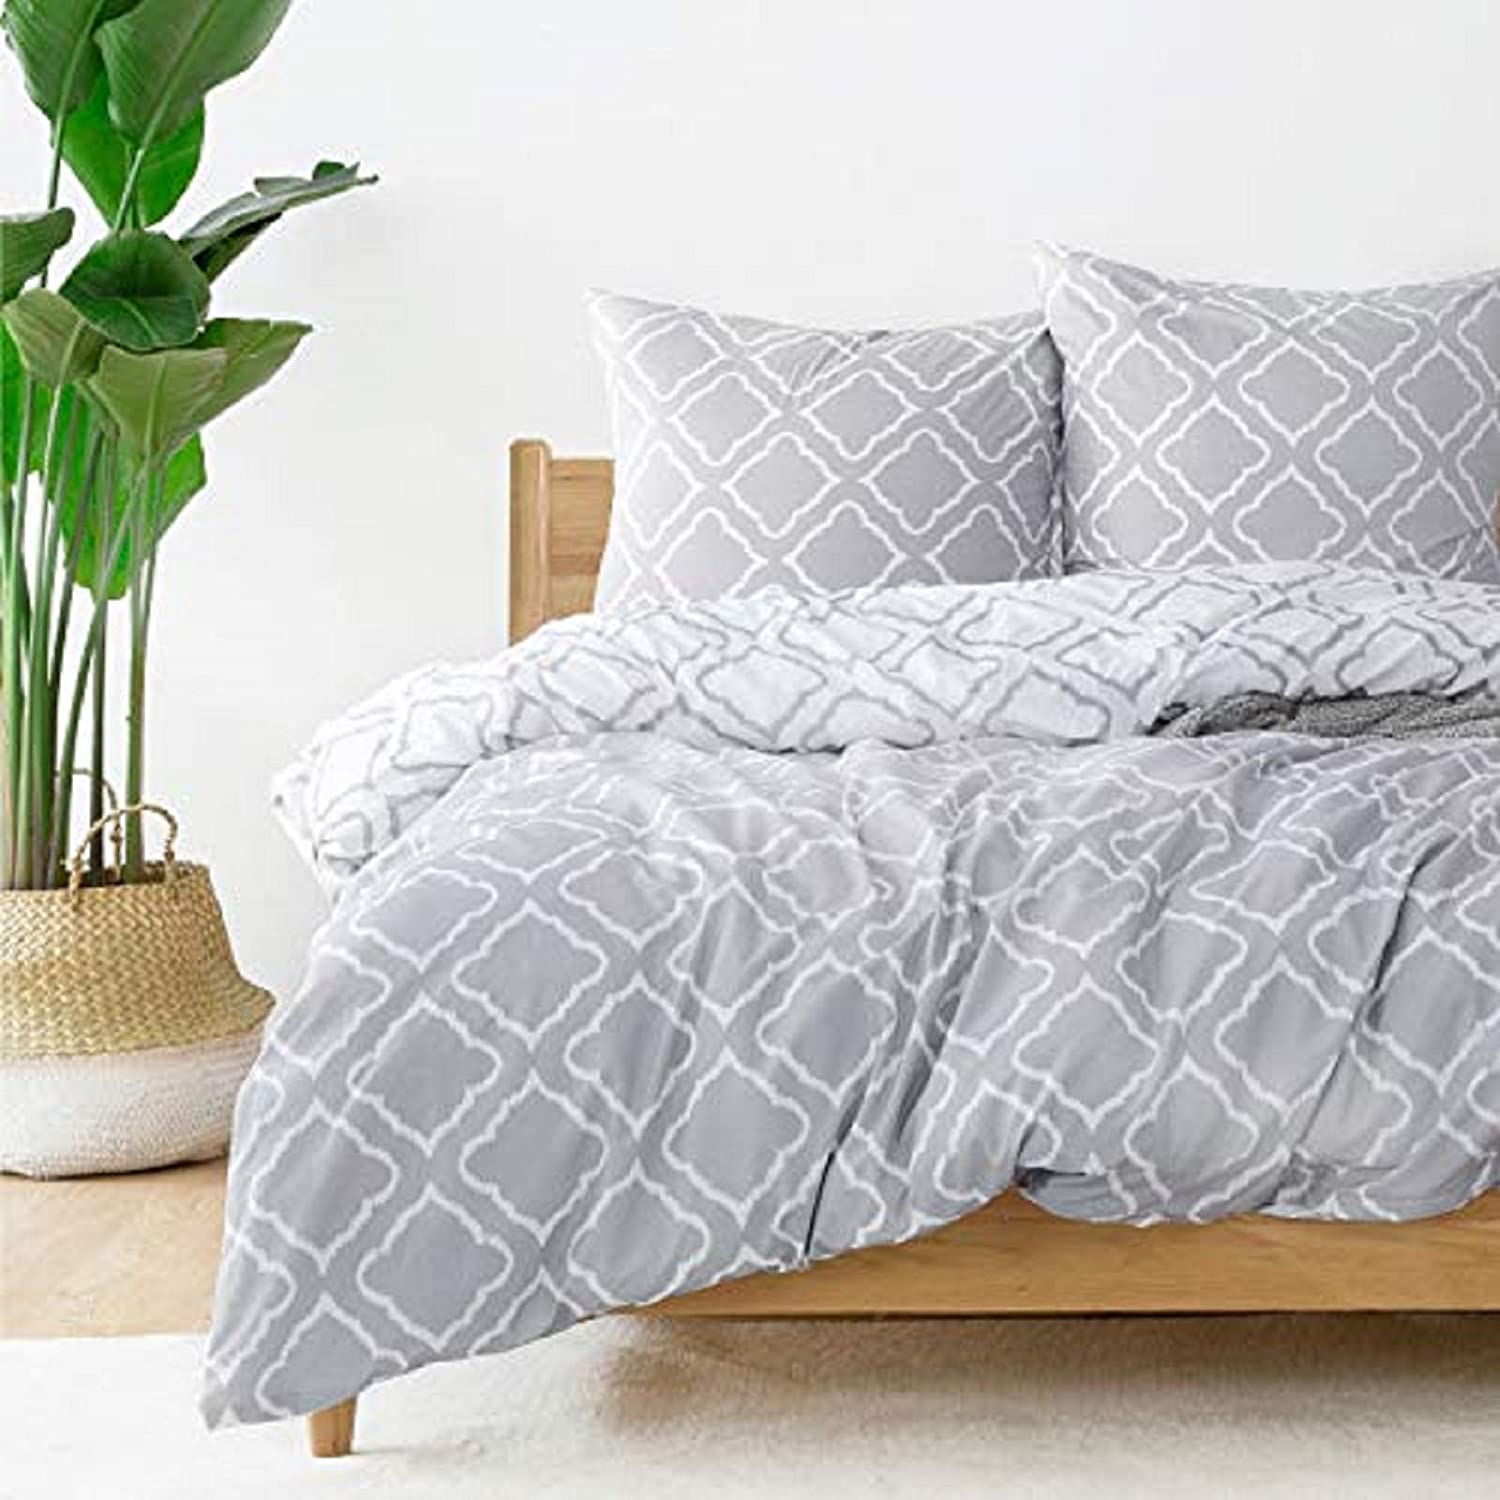 Bedsure Bed linen 200 x 200 microfibre 3-piece - gray duvet cover set with grid pattern, soft fluffy duvet covers with zipper and 2 pillowcases of 80 x 80 cm